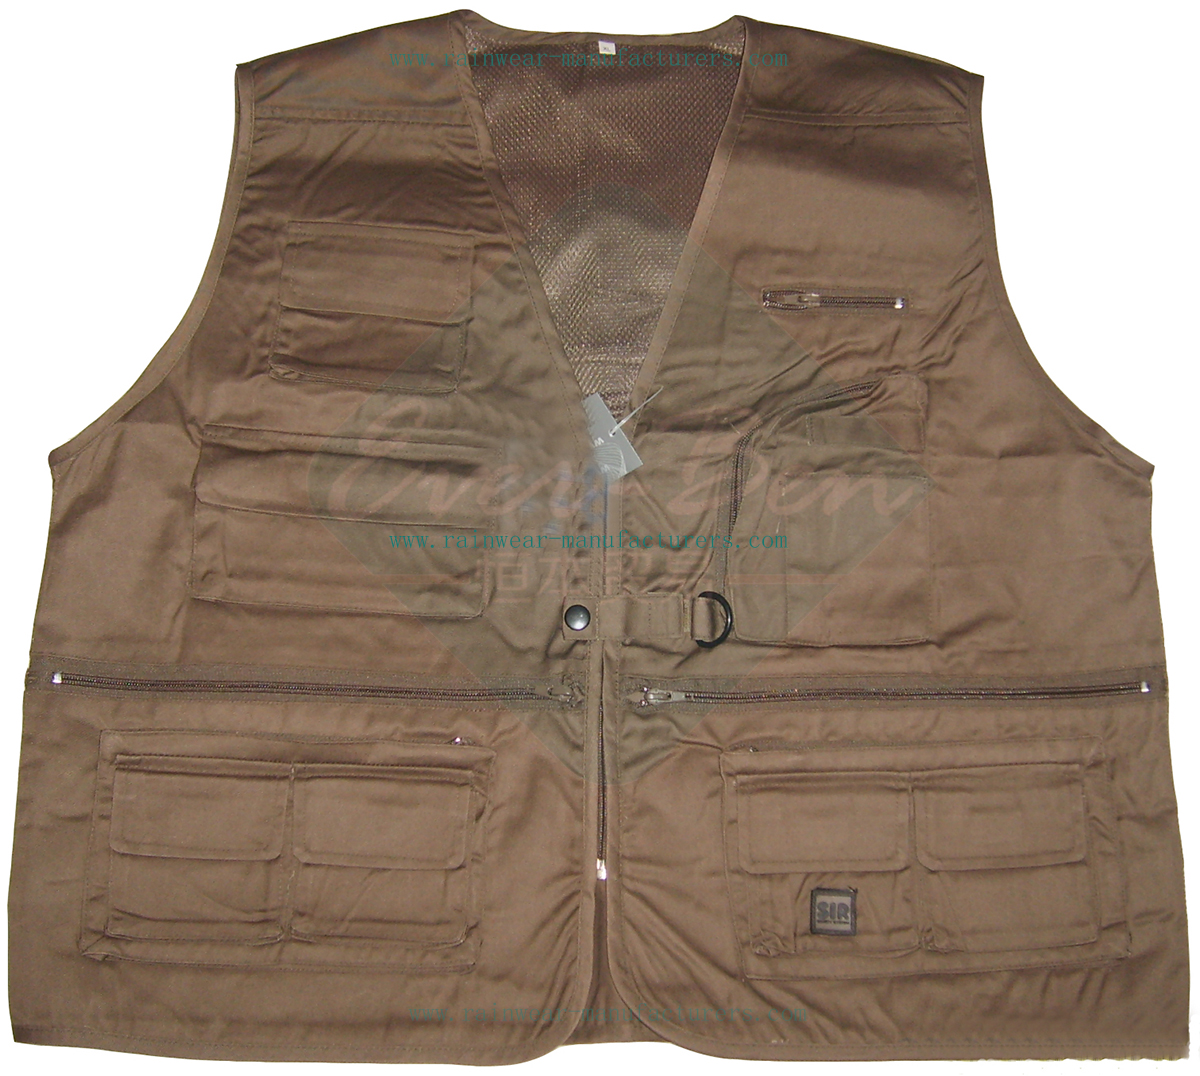 surveyor work vest with pockets